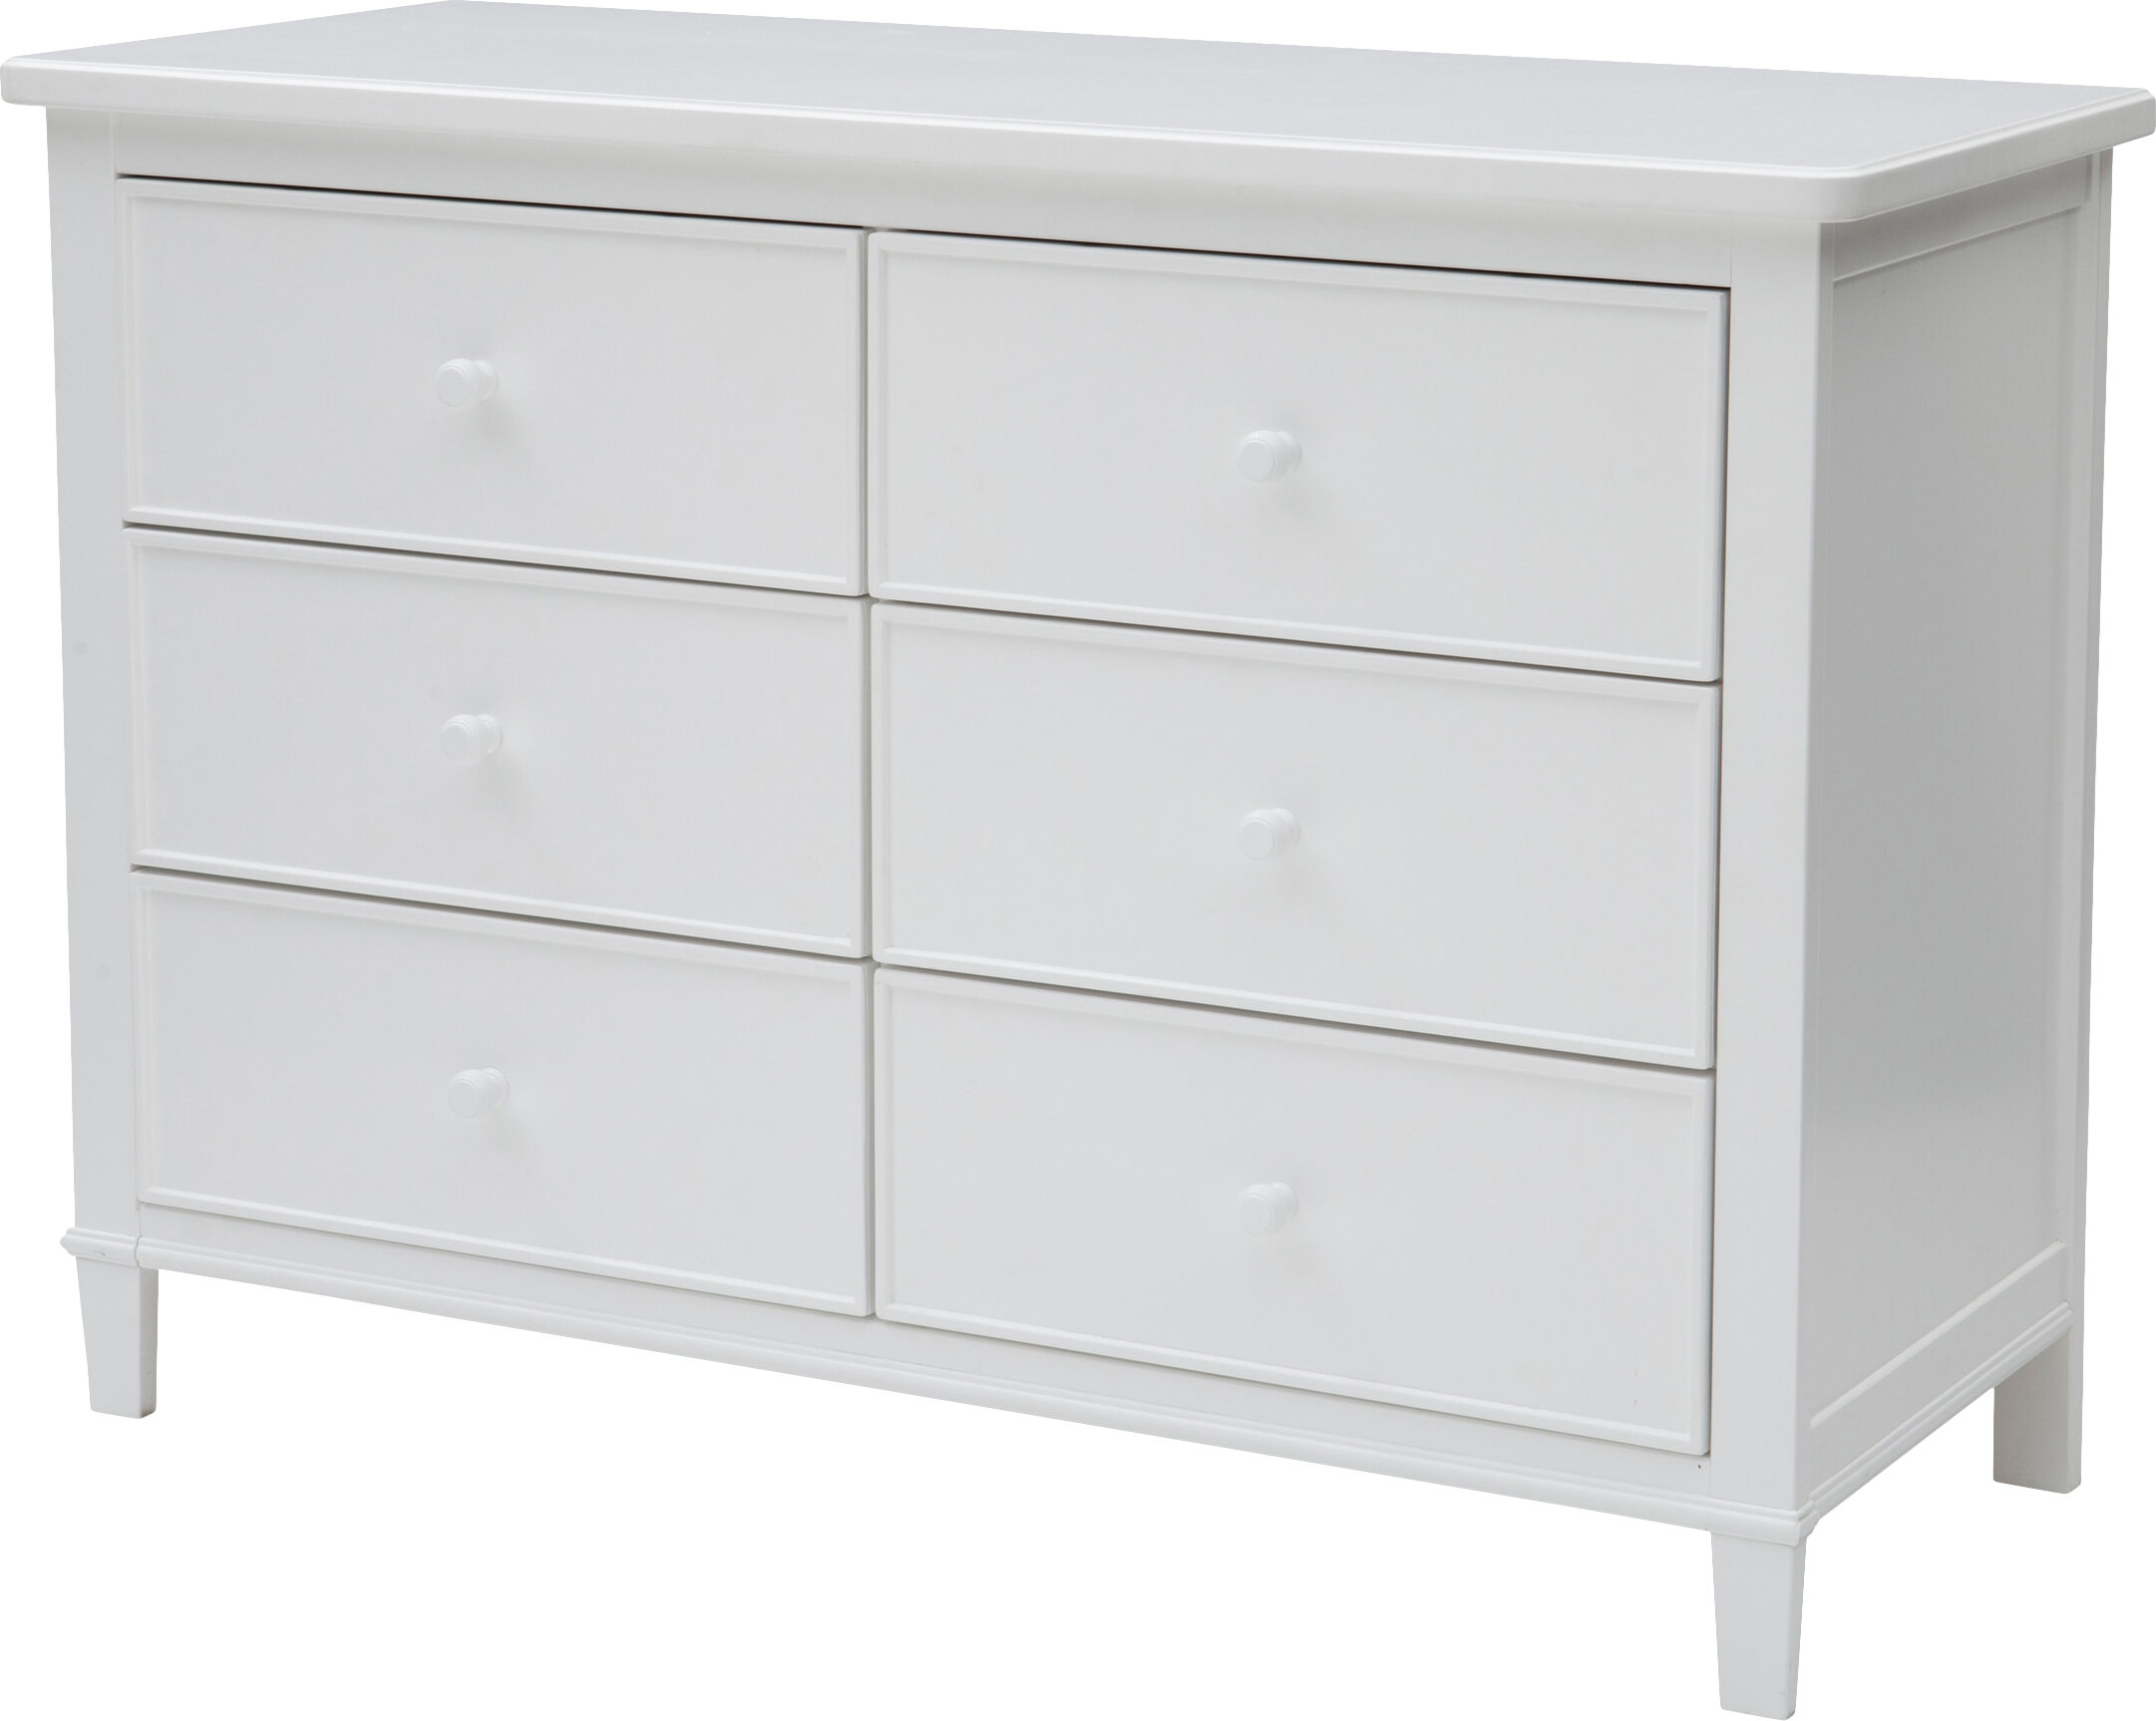 chest wht webster white dresser listed manufacturer drawer numbers the is lso temple also sometimes following under sku piper